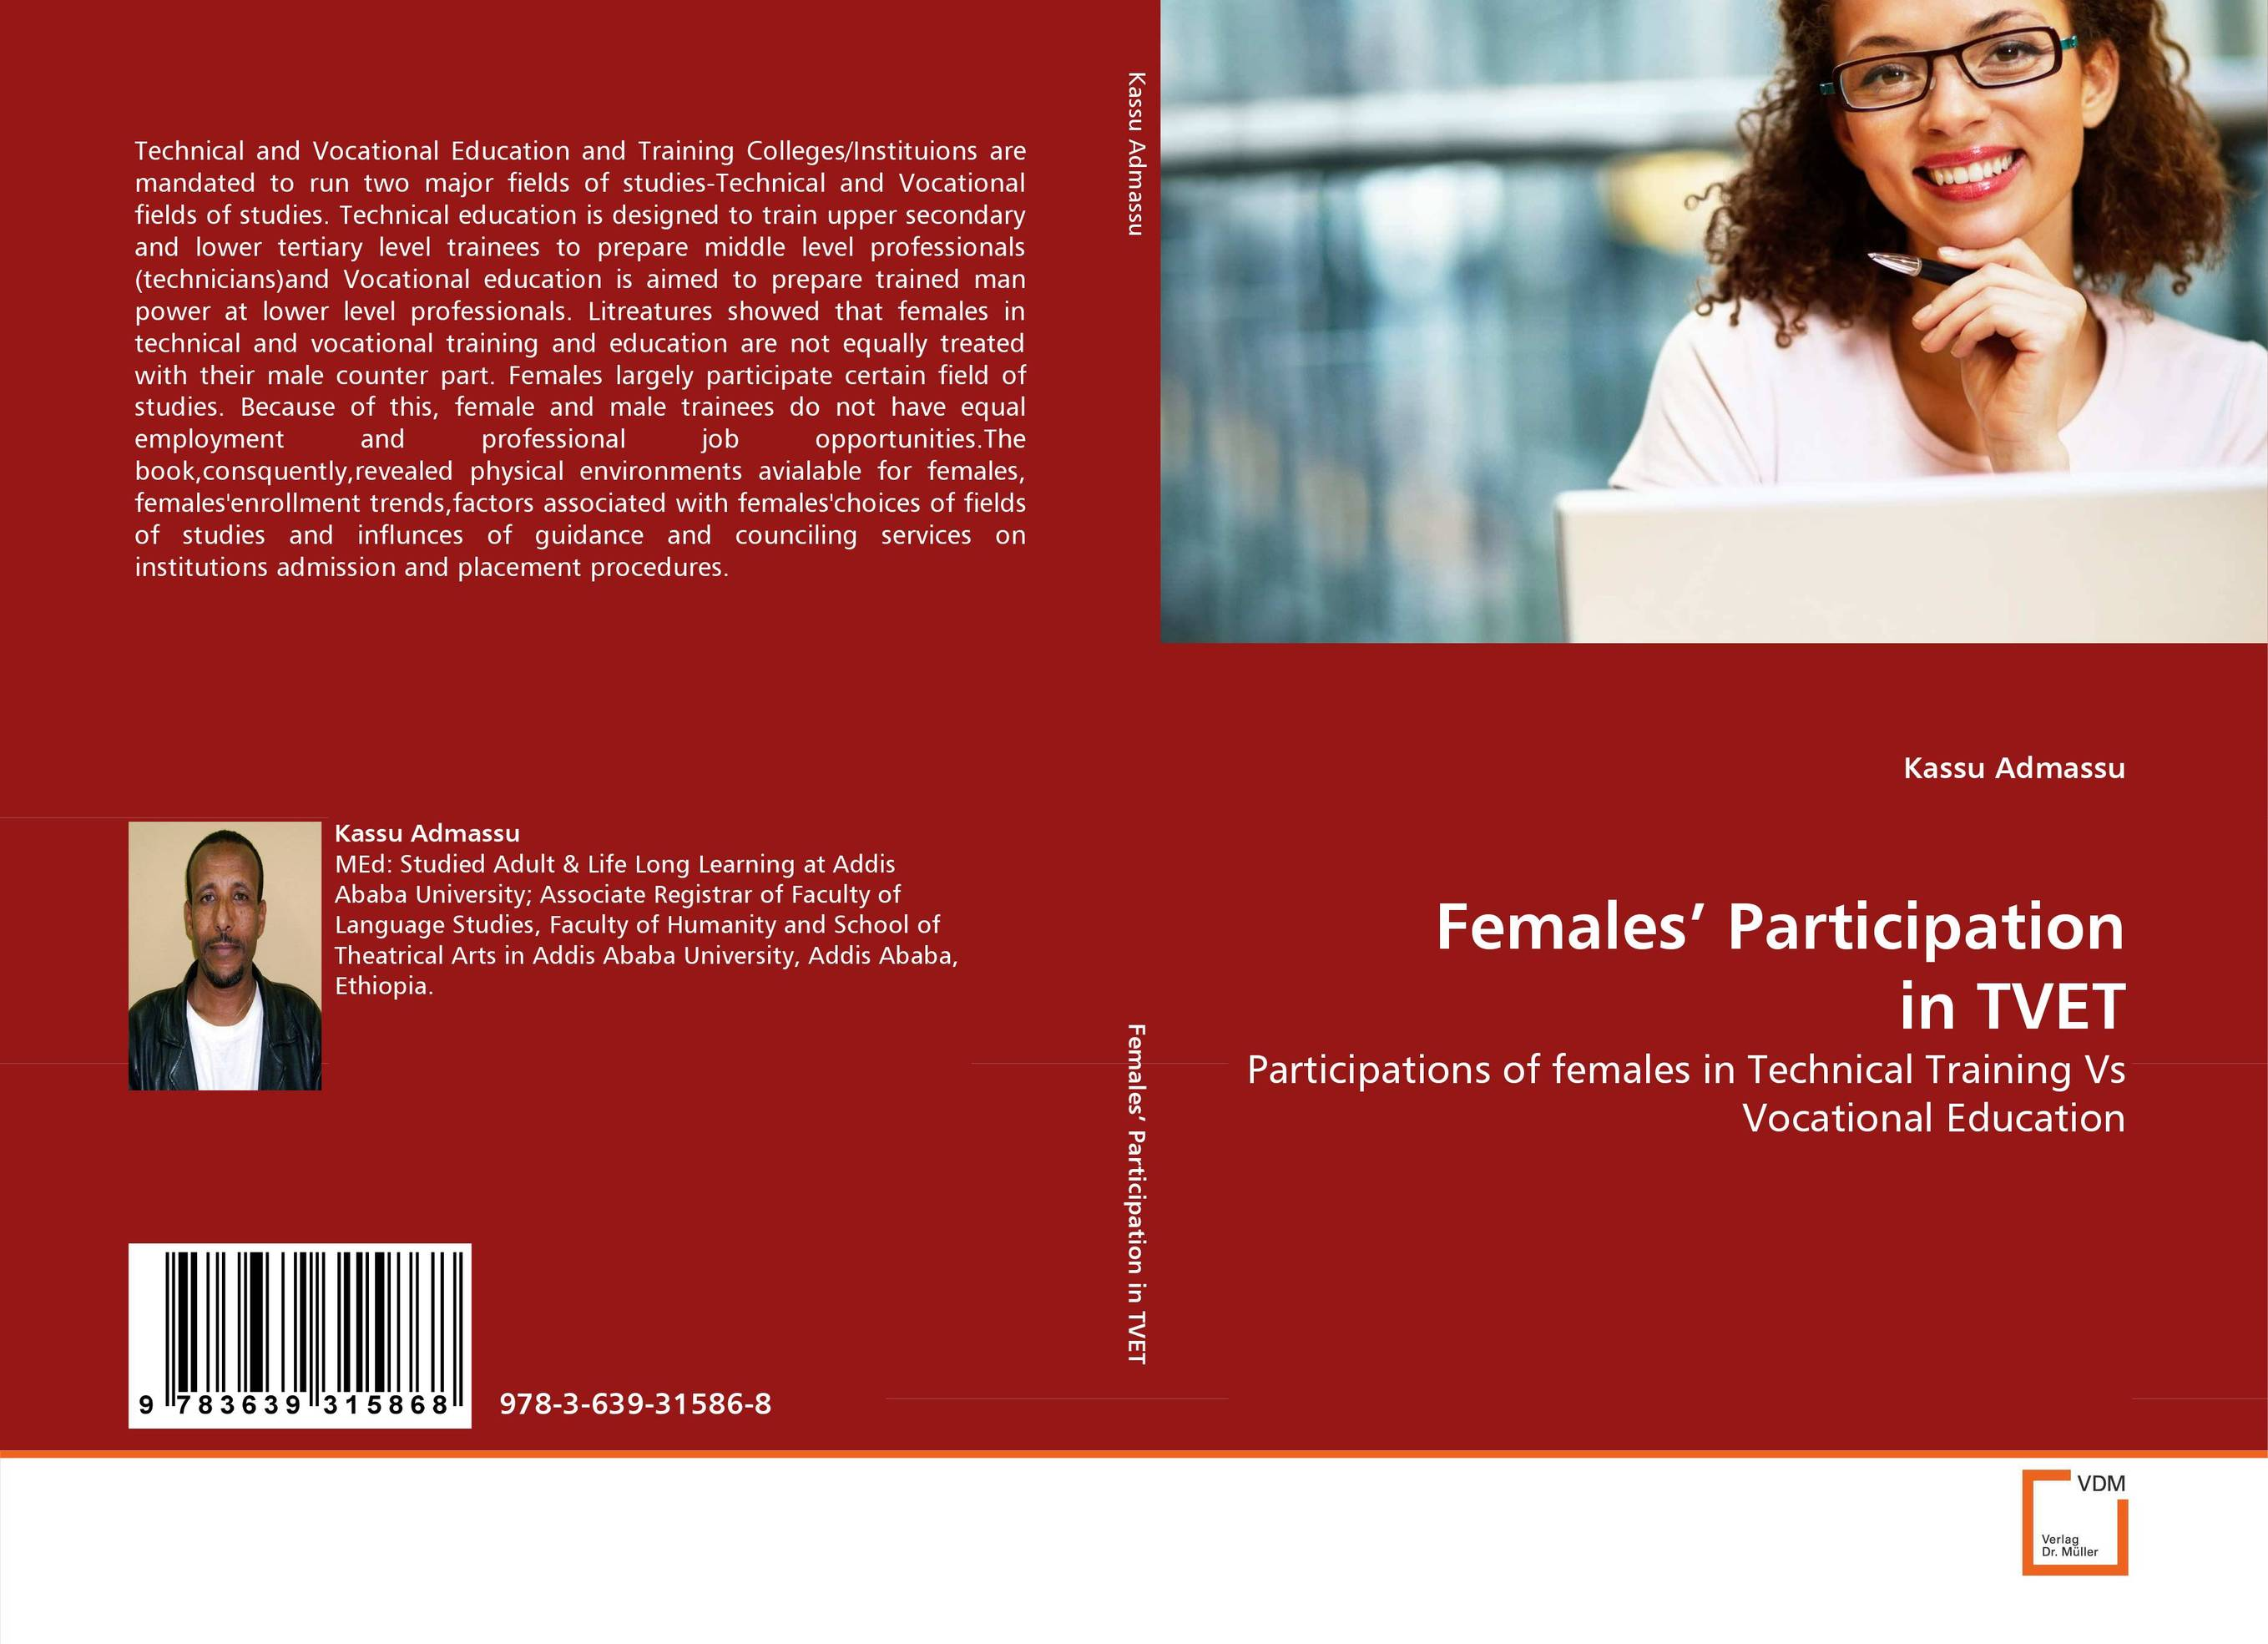 Females'' Participation in TVET formal vocational education and training